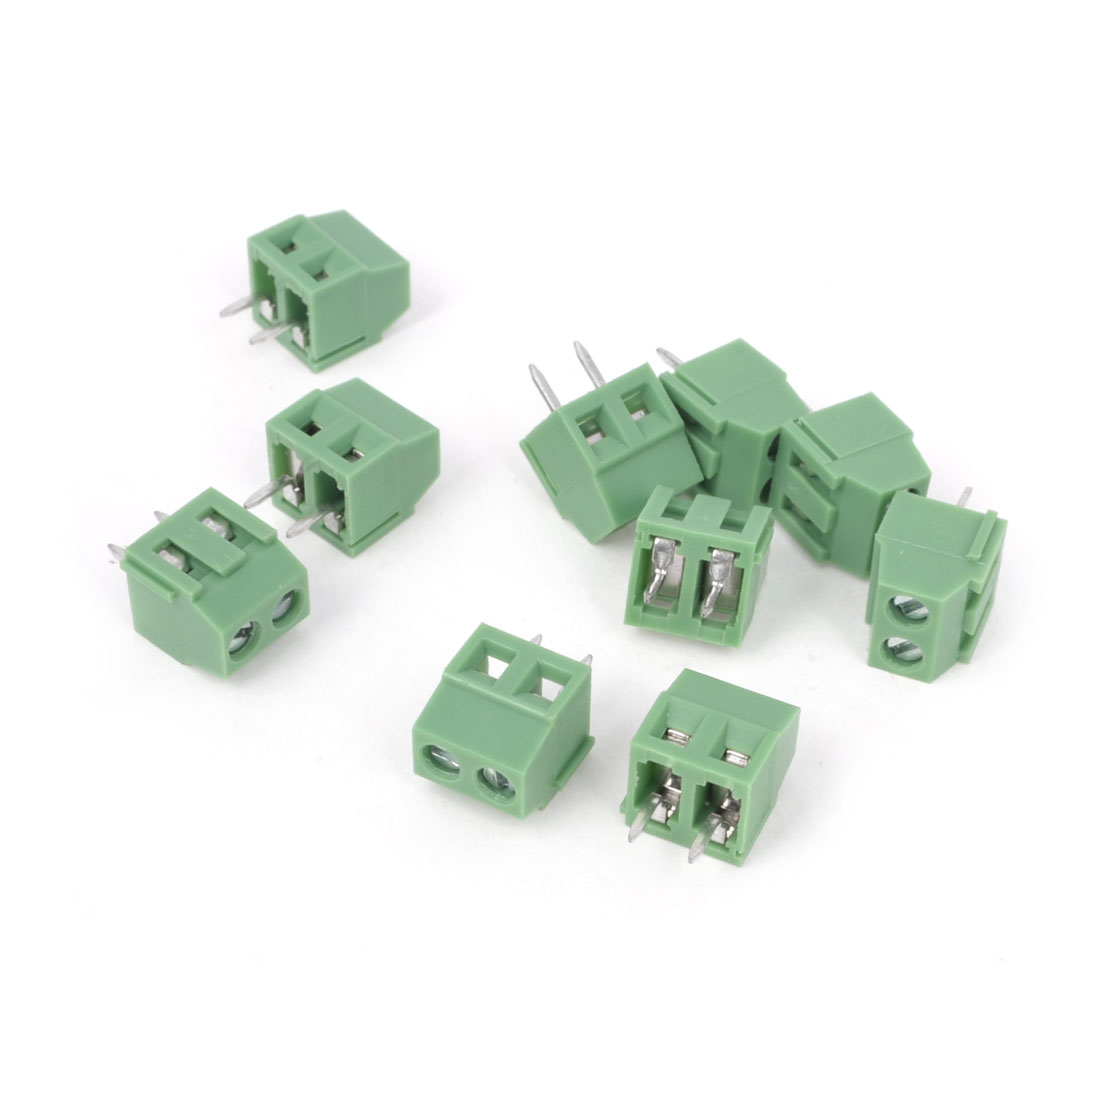 10Pcs 300V 10A 2P PCB Screw Terminal Block Connector 3.81mm Pitch Green